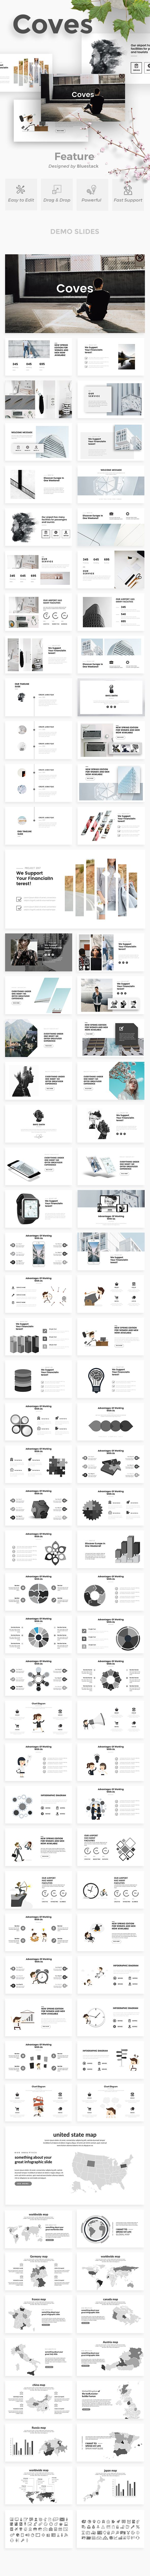 Coves Creative Google Slide Template — Google Slides PPTX #project presentation #corporate • Available here ➝ https://graphicriver.net/item/coves-creative-google-slide-template/21004864?ref=pxcr